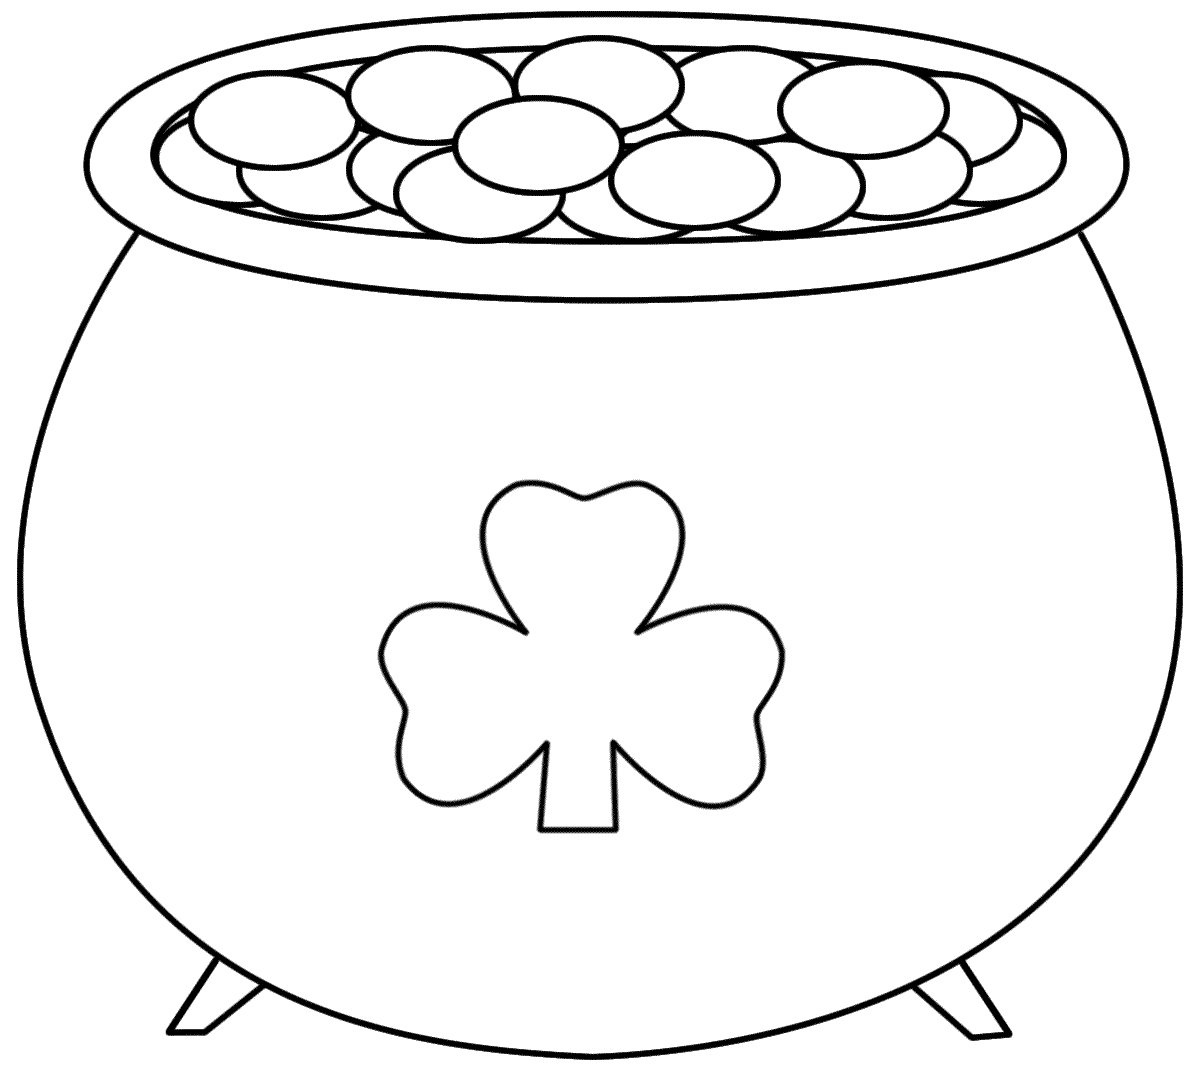 Pot+of+gold+printable   Pot Of Gold - Coloring Pages   Saint